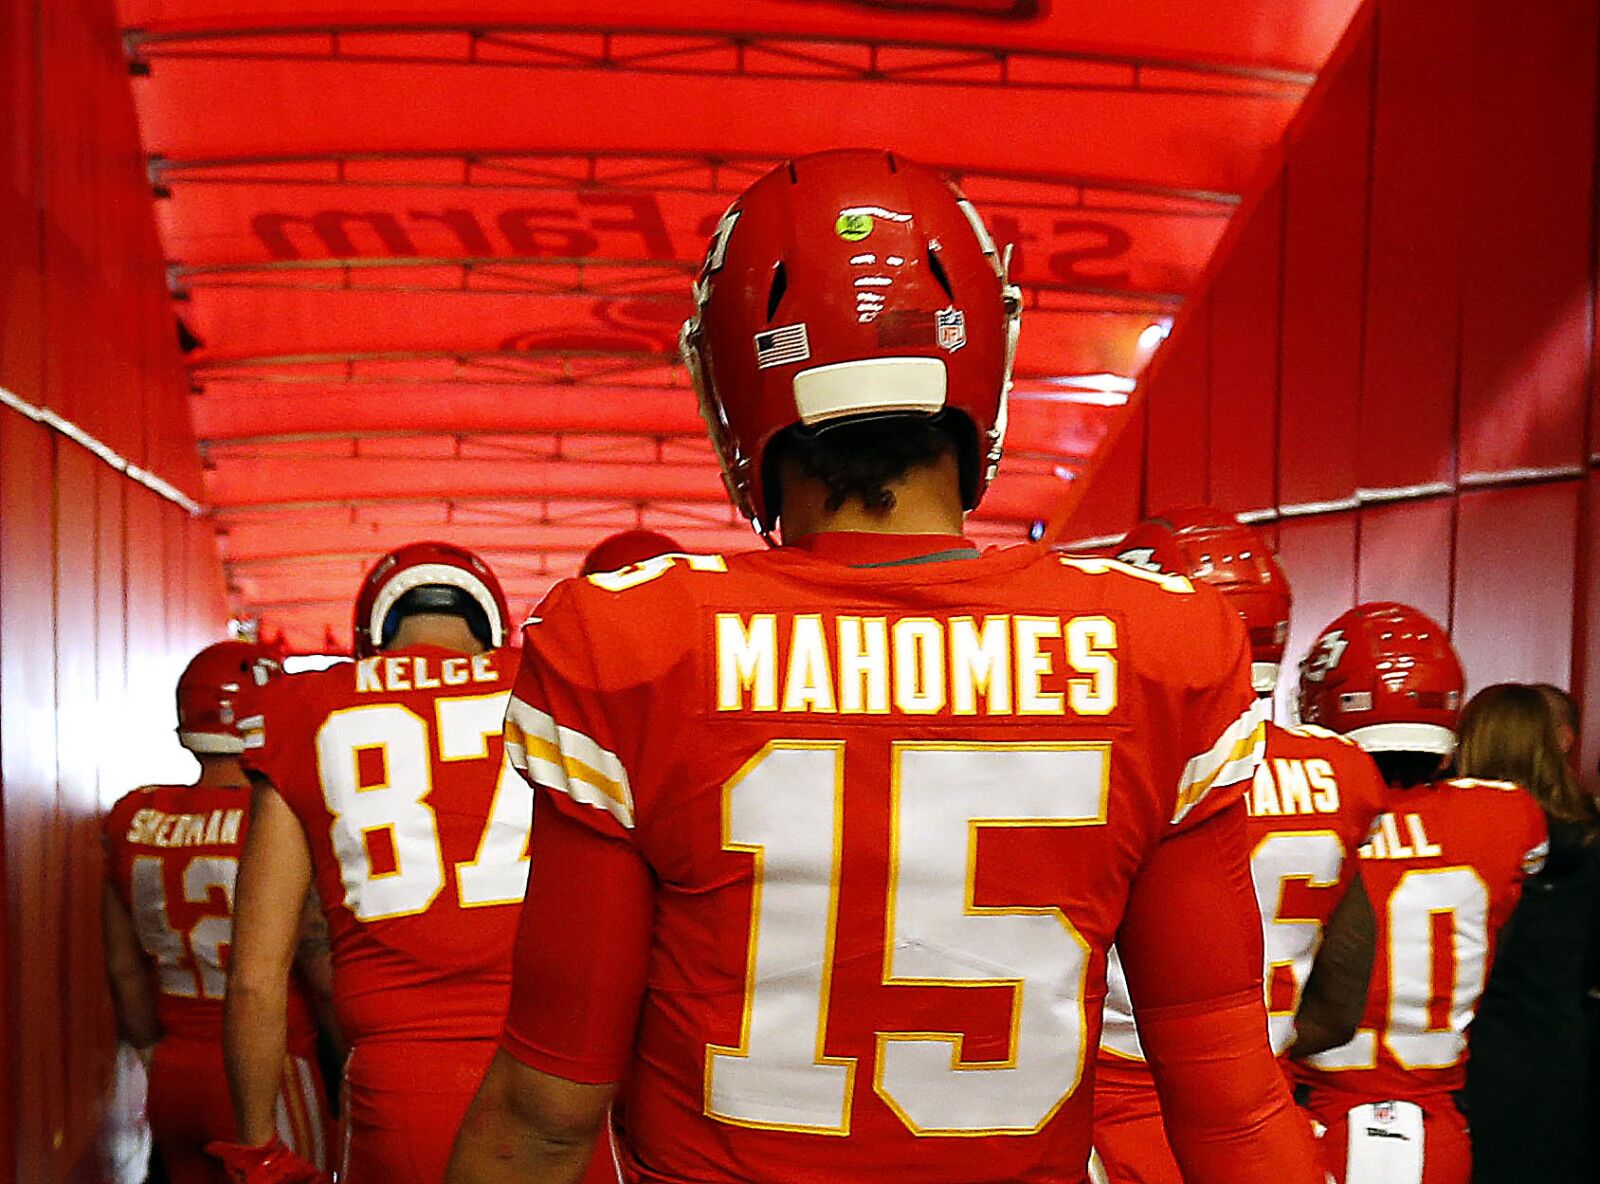 The Kansas City Chiefs will go as far as Patrick Mahomes can carry them cacde67d1